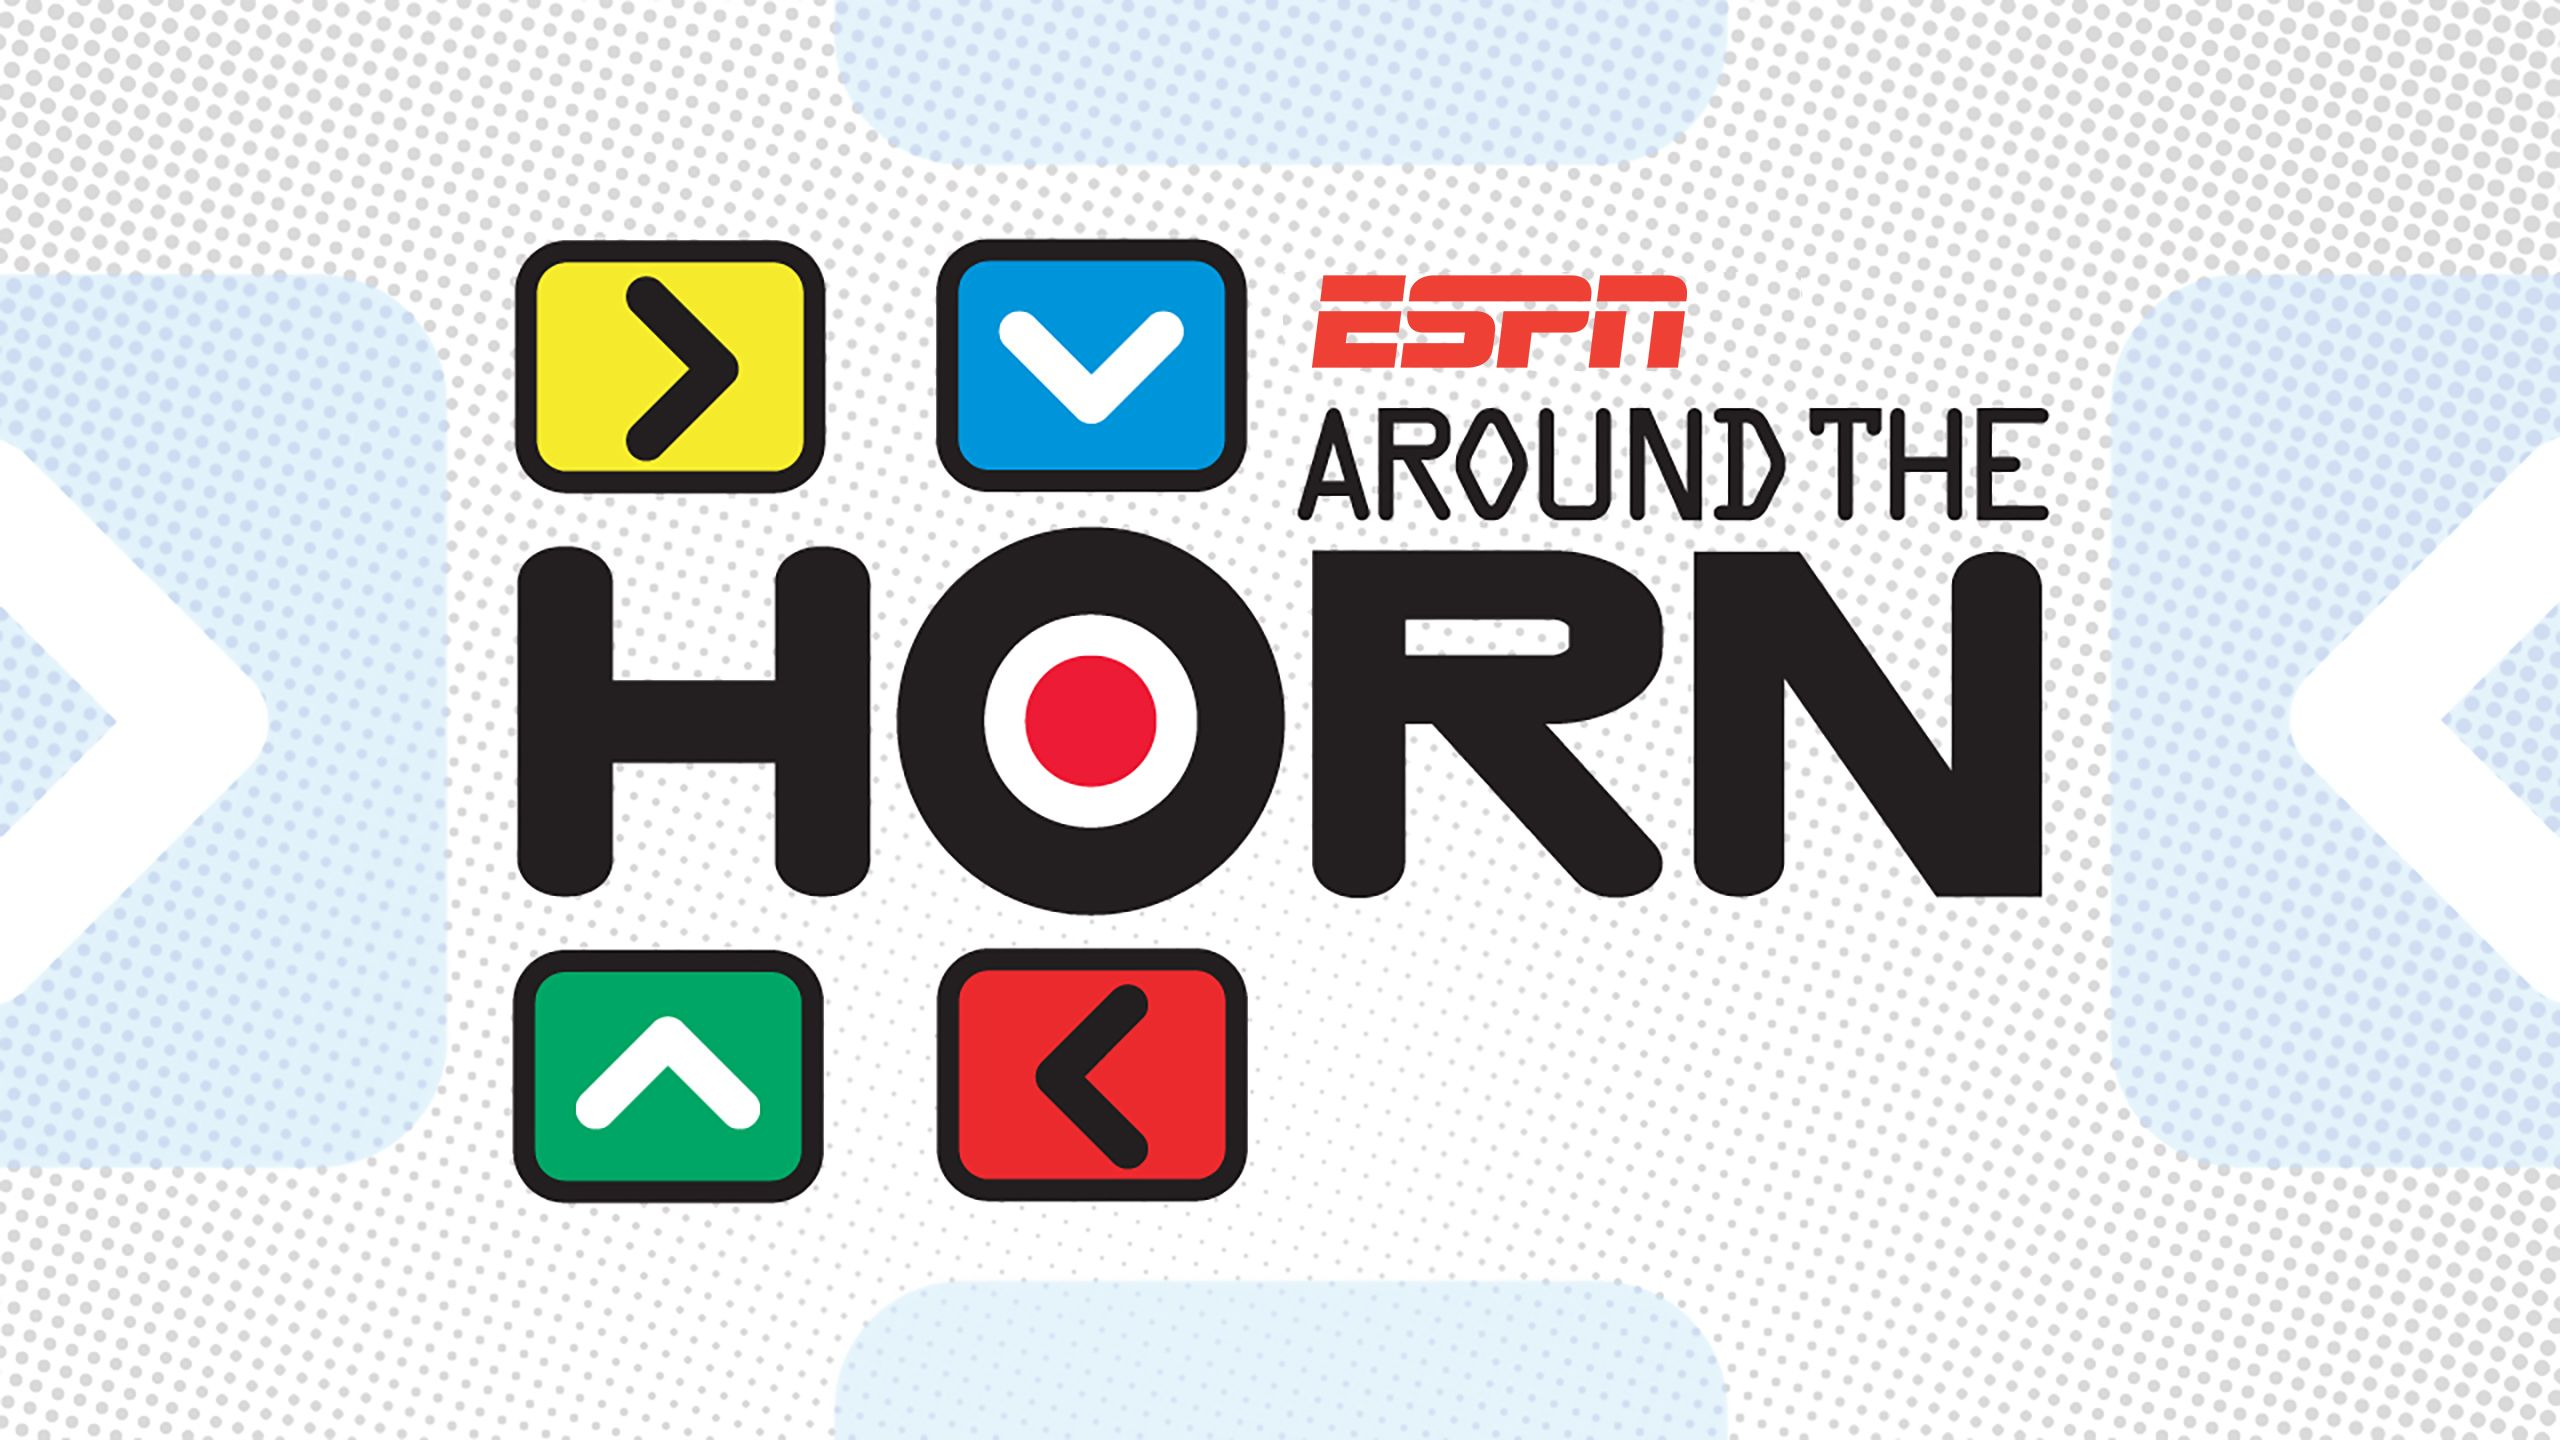 Wed, 11/22 - Around The Horn